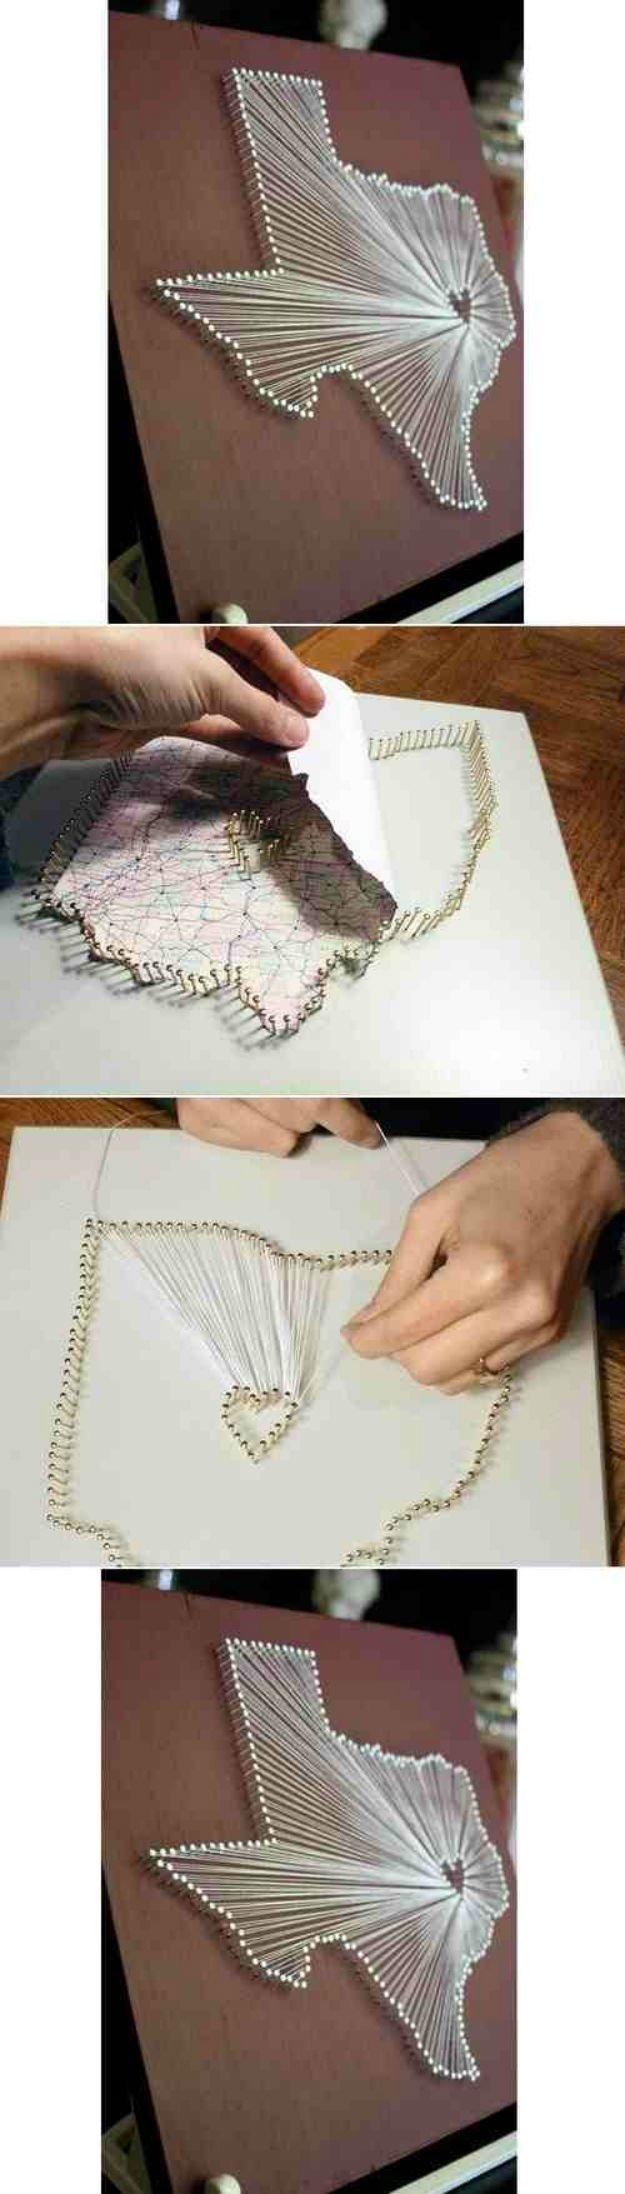 10 Nice Homemade Gift Ideas For Girlfriend christmas gifts for girlfriends diy projects craft ideas how tos 11